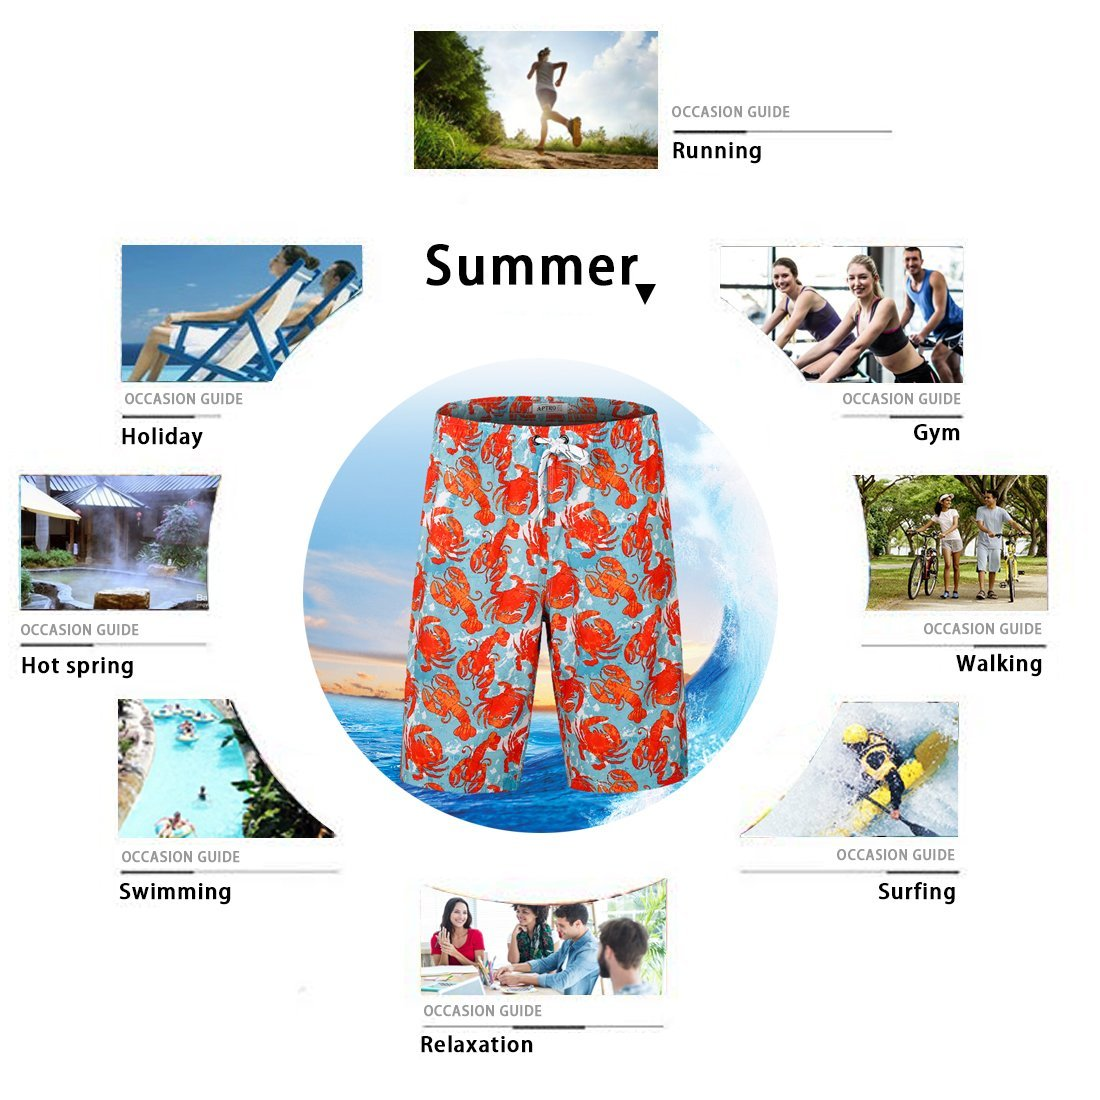 APTRO Men's Swim Trunks Crab Printing Bathing Suit #HW016 XXL by APTRO (Image #7)